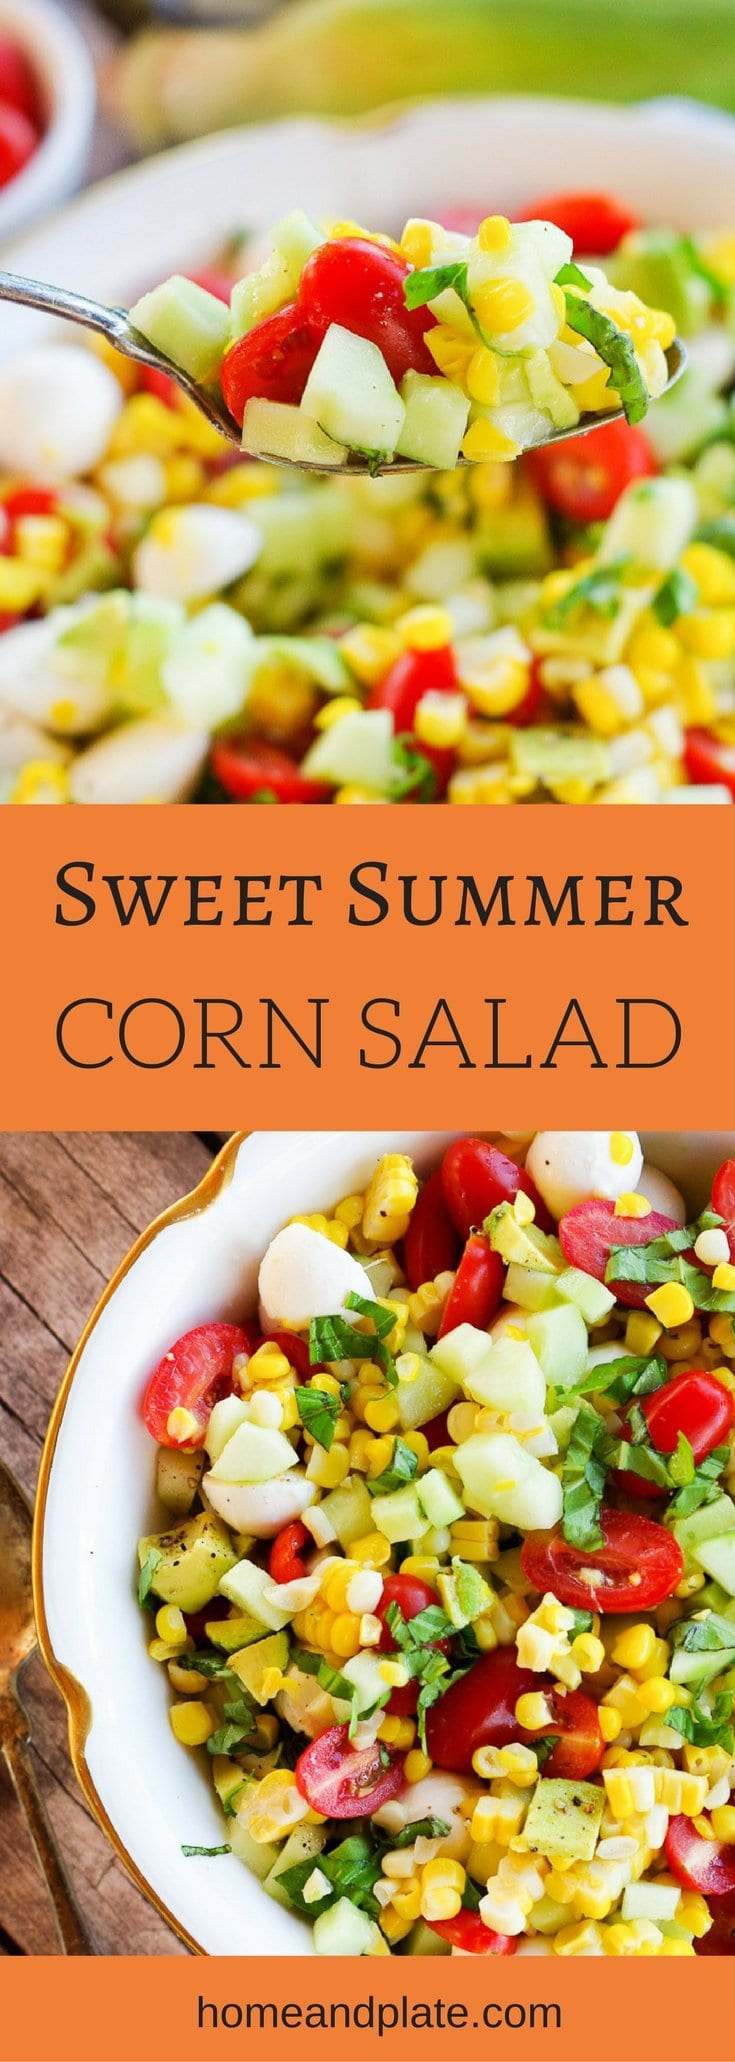 Summer Sweet Corn Salad | Enjoy summer's bounty of fresh fruits and vegetables with a corn salad featuring sweet cherry tomatoes, diced avocado, fresh mozzarella and homegrown basil.